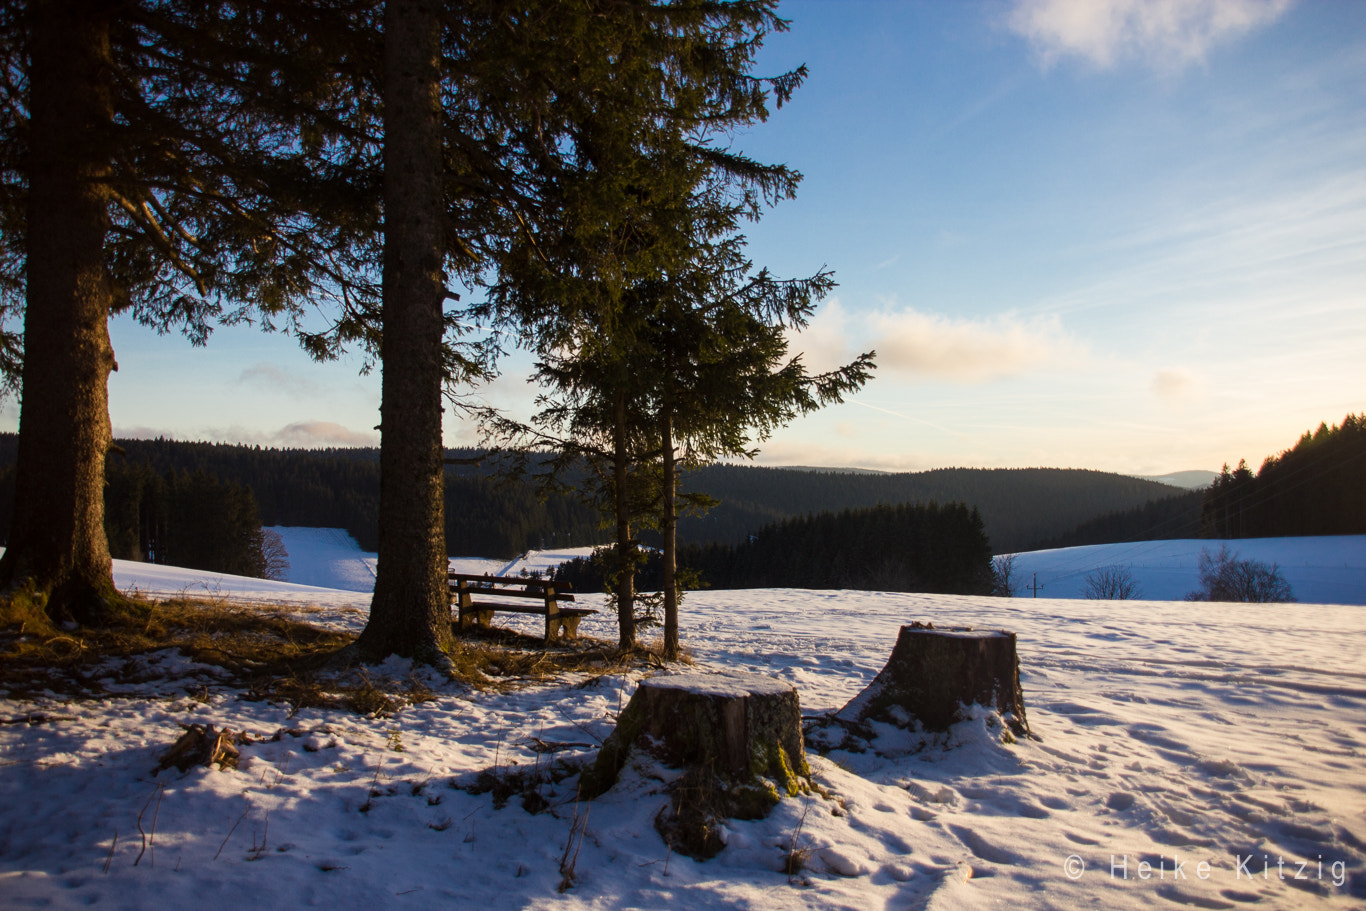 Photograph Black forest Germany by Heike Kitzig on 500px